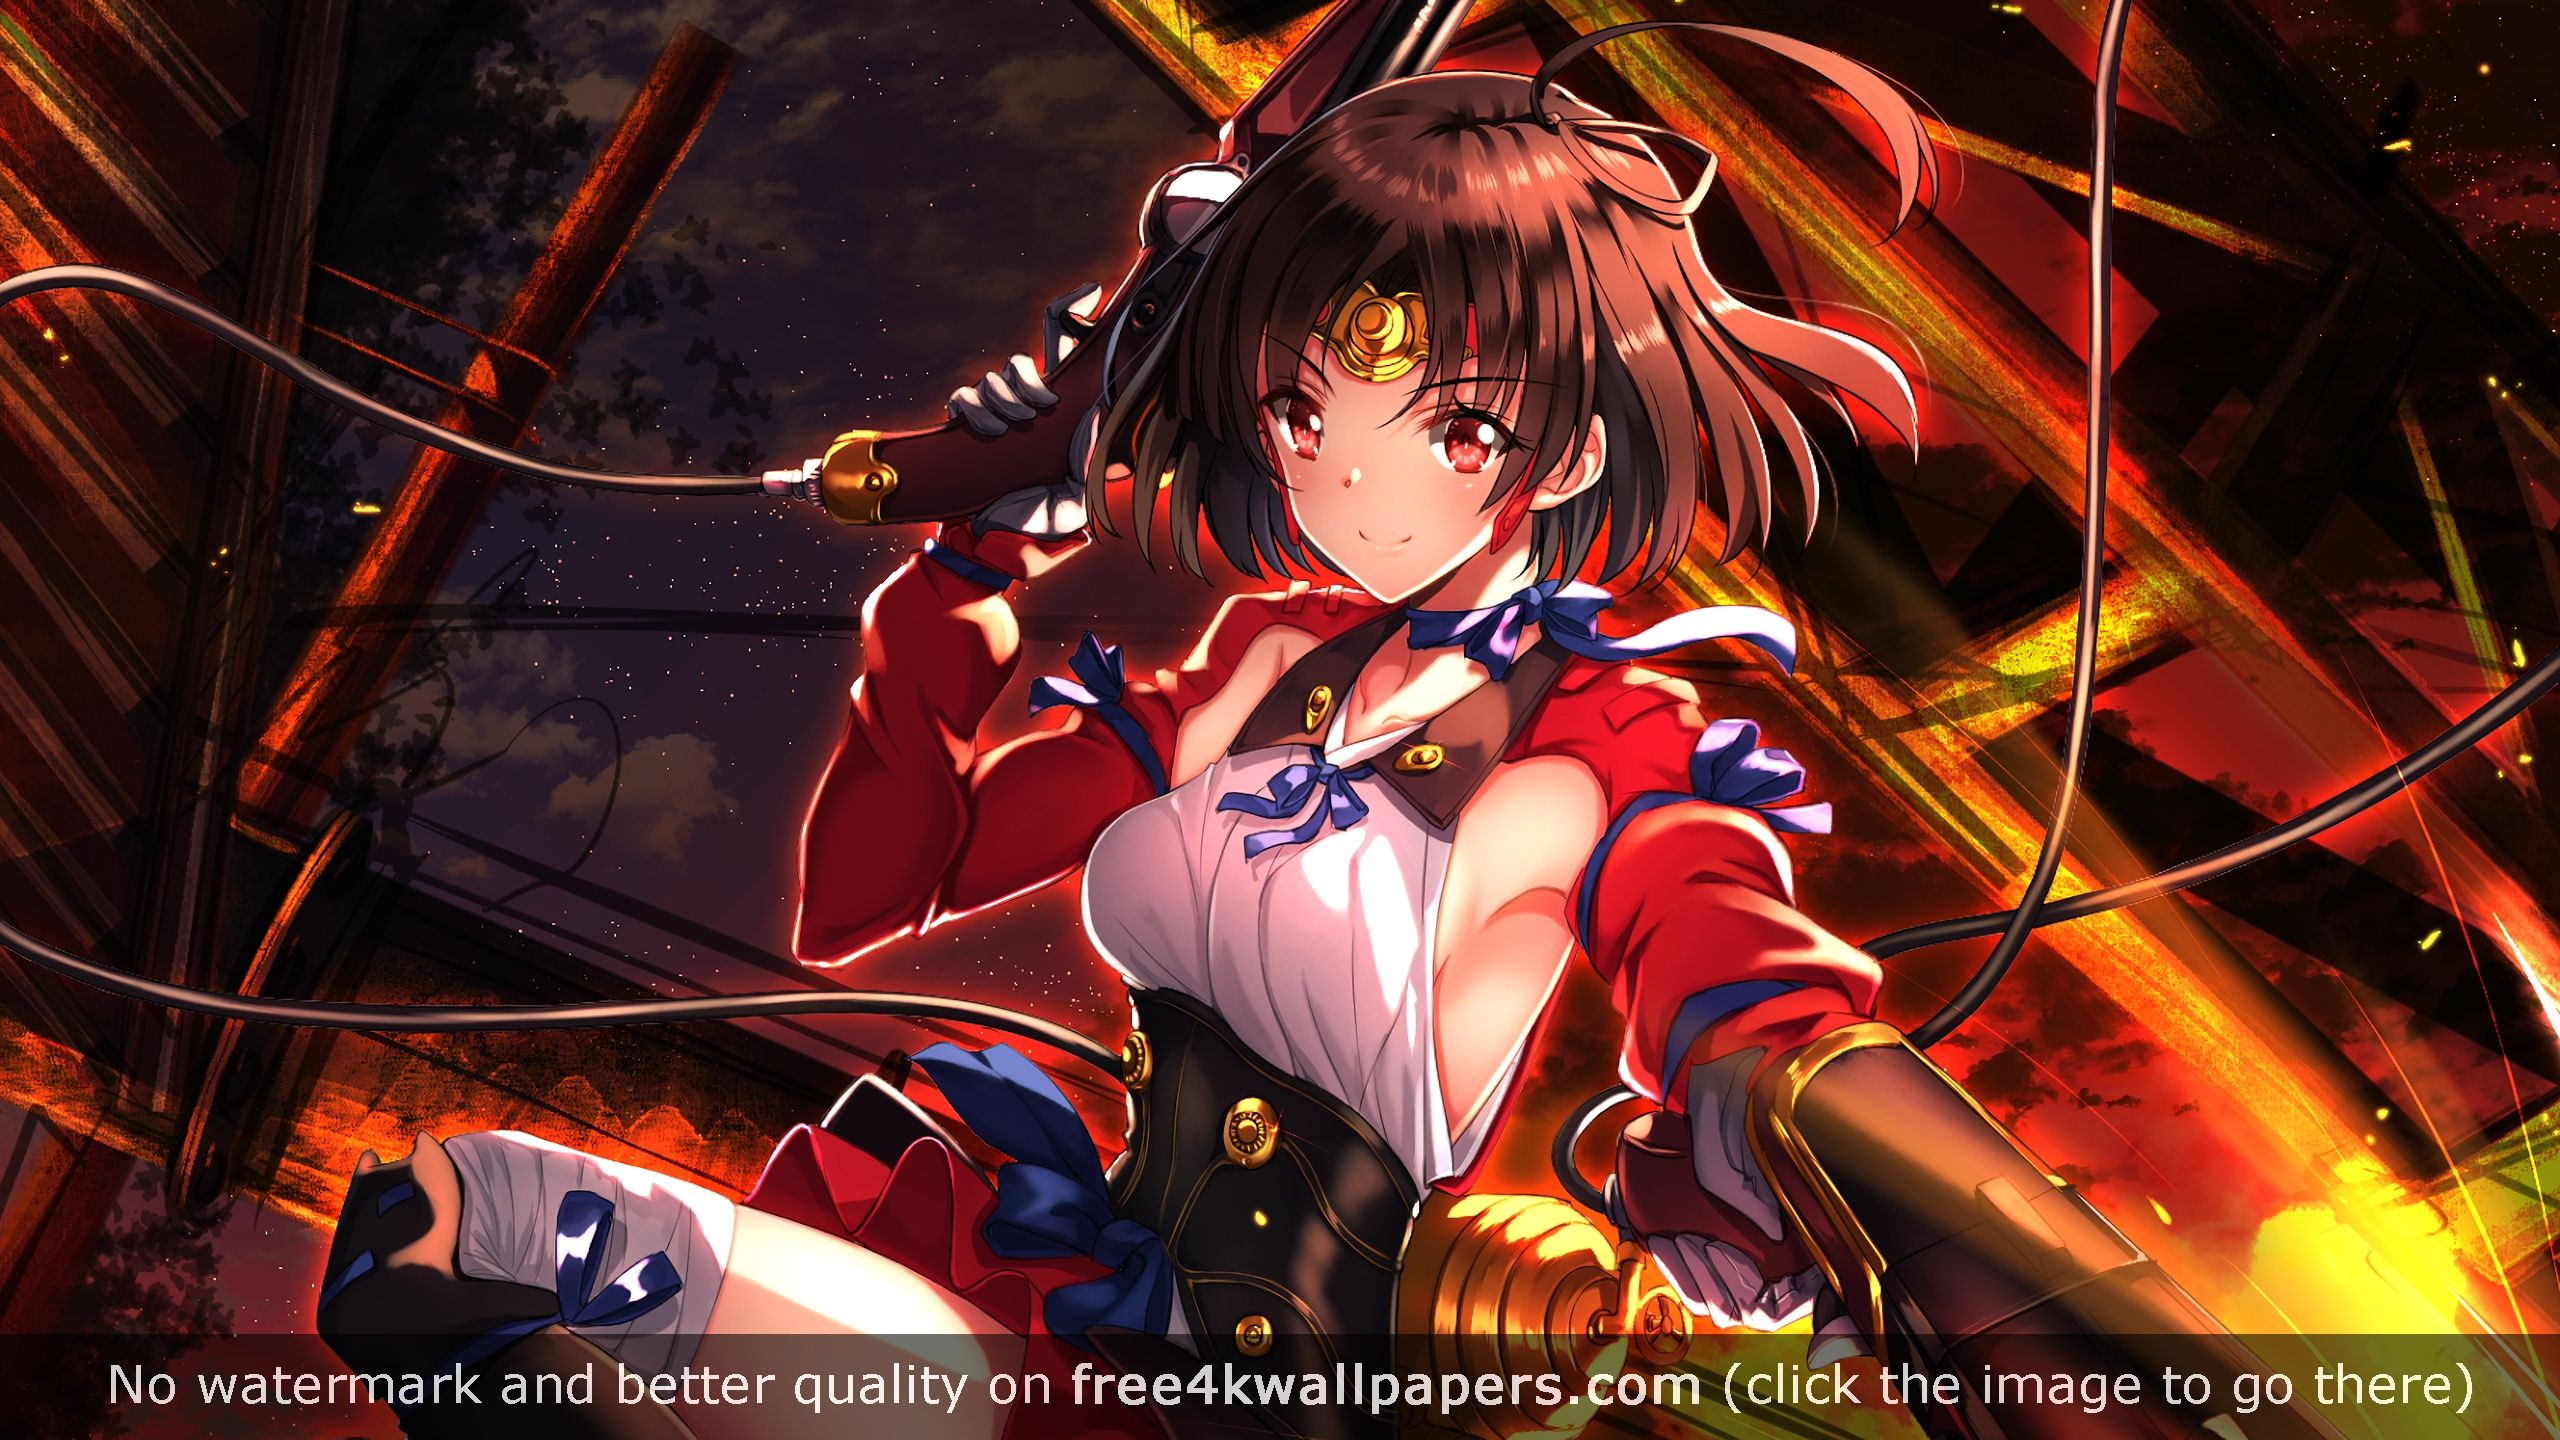 Mumei Kabaneri Of The Iron Fortress Hd Wallpaper Iron Fortress Anime Wallpaper Anime